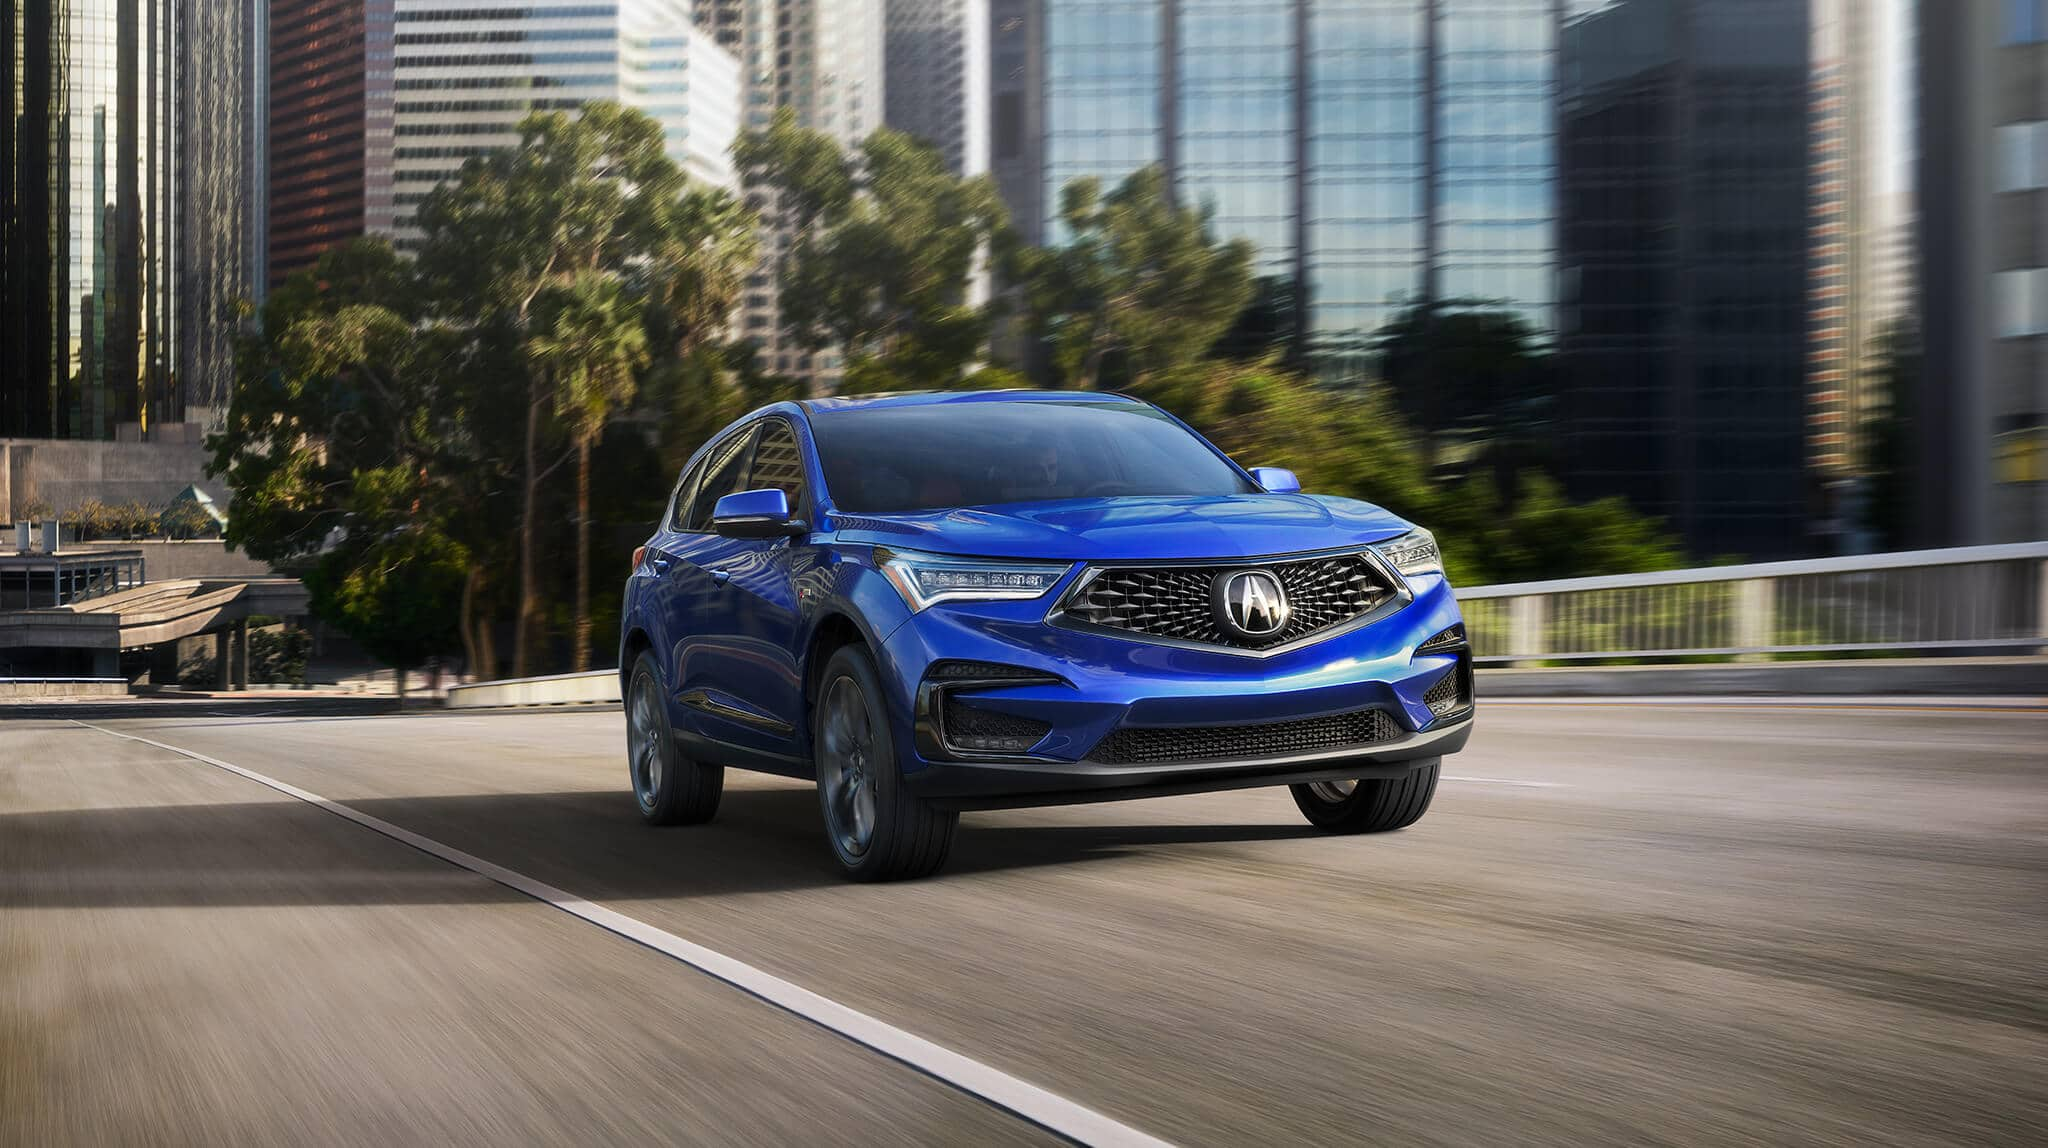 Best-selling cars in Canada 2018 - Acura